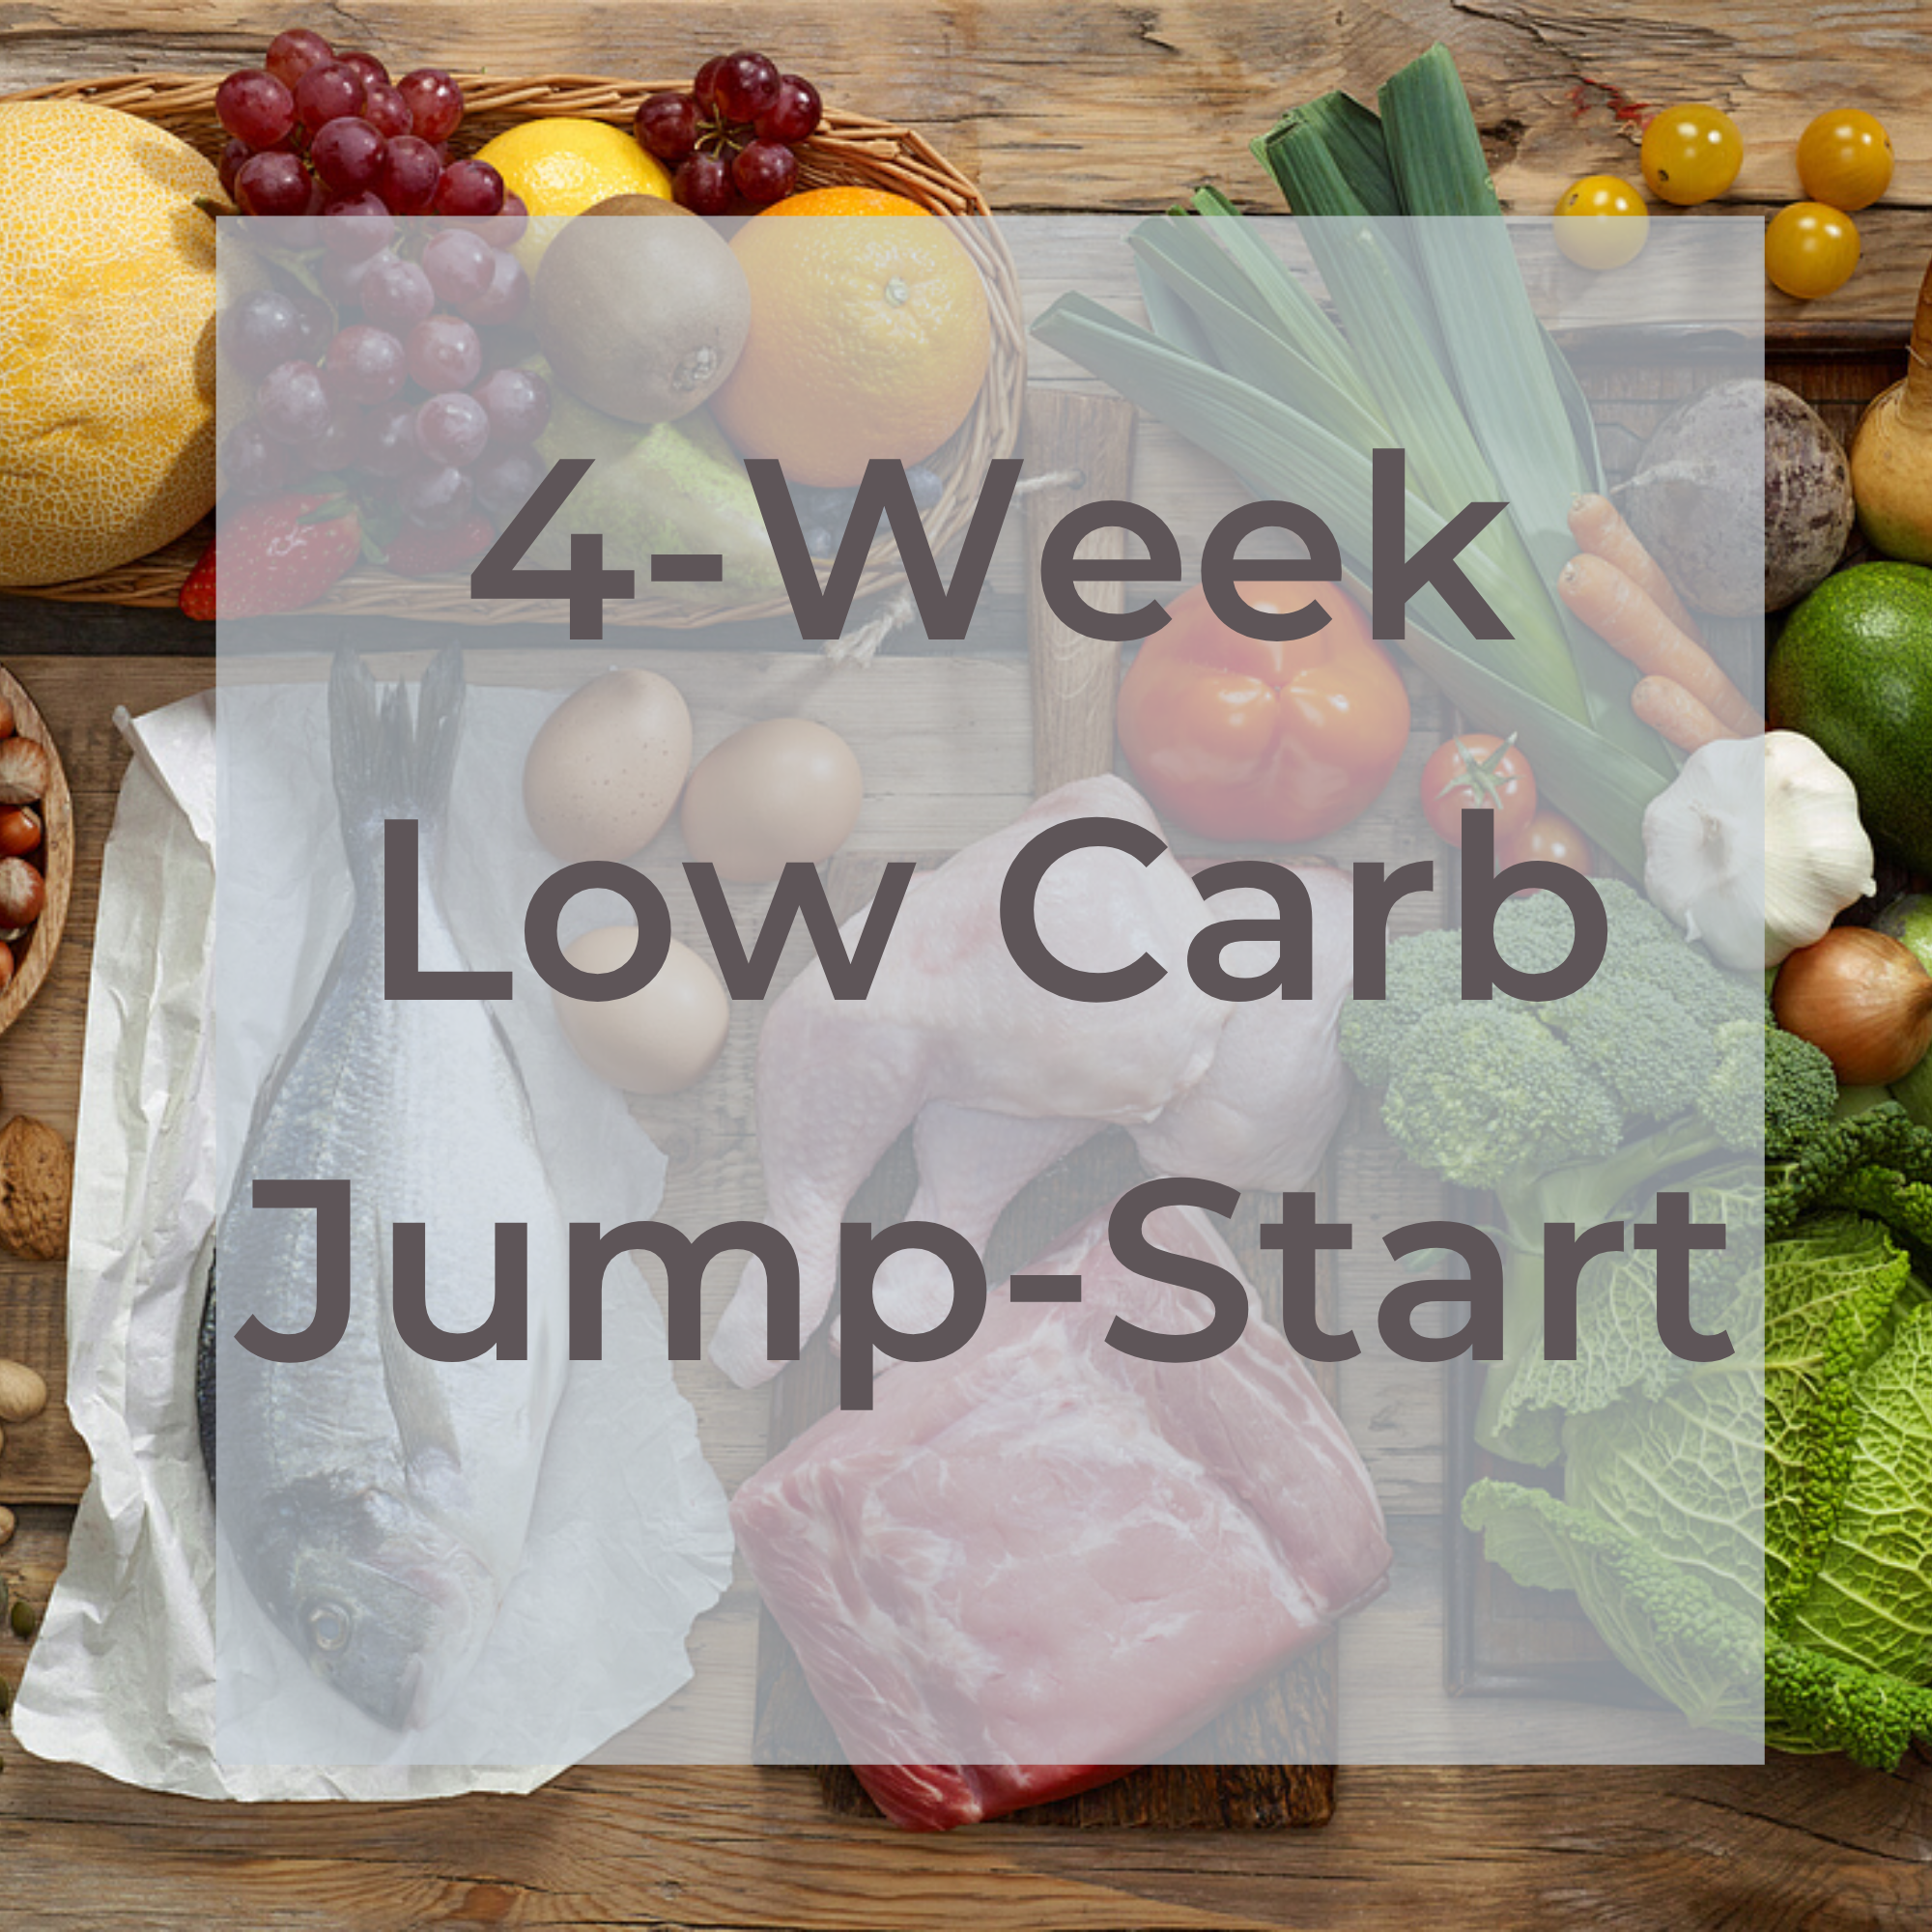 4-Week Low Carb Jump-Start